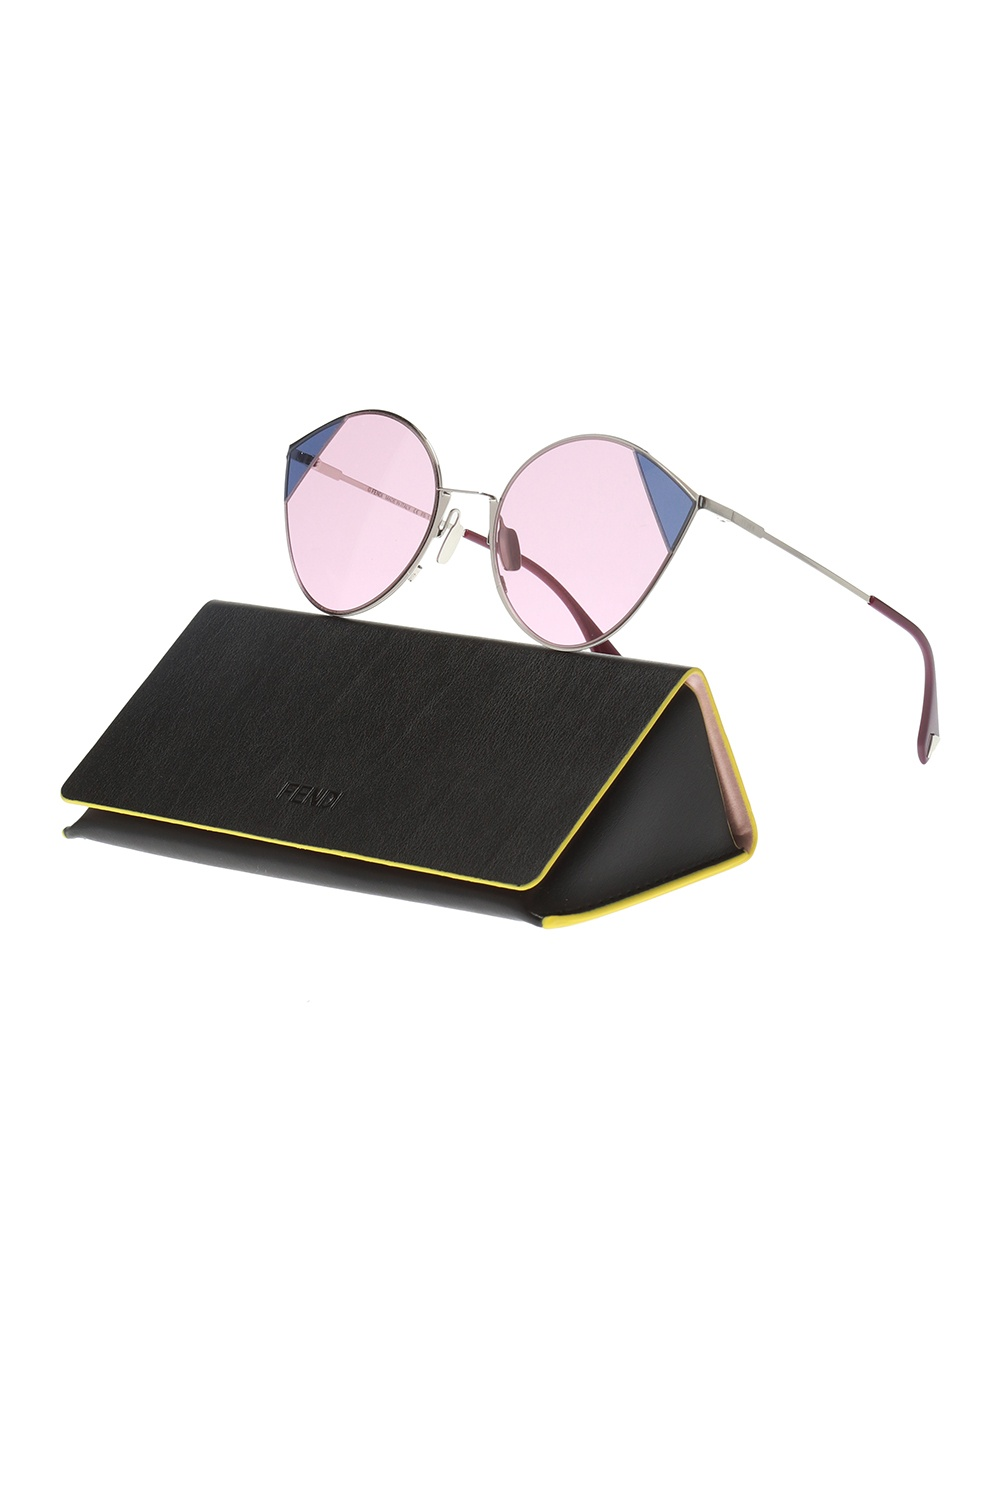 Fendi 'Cut-Eye' sunglasses